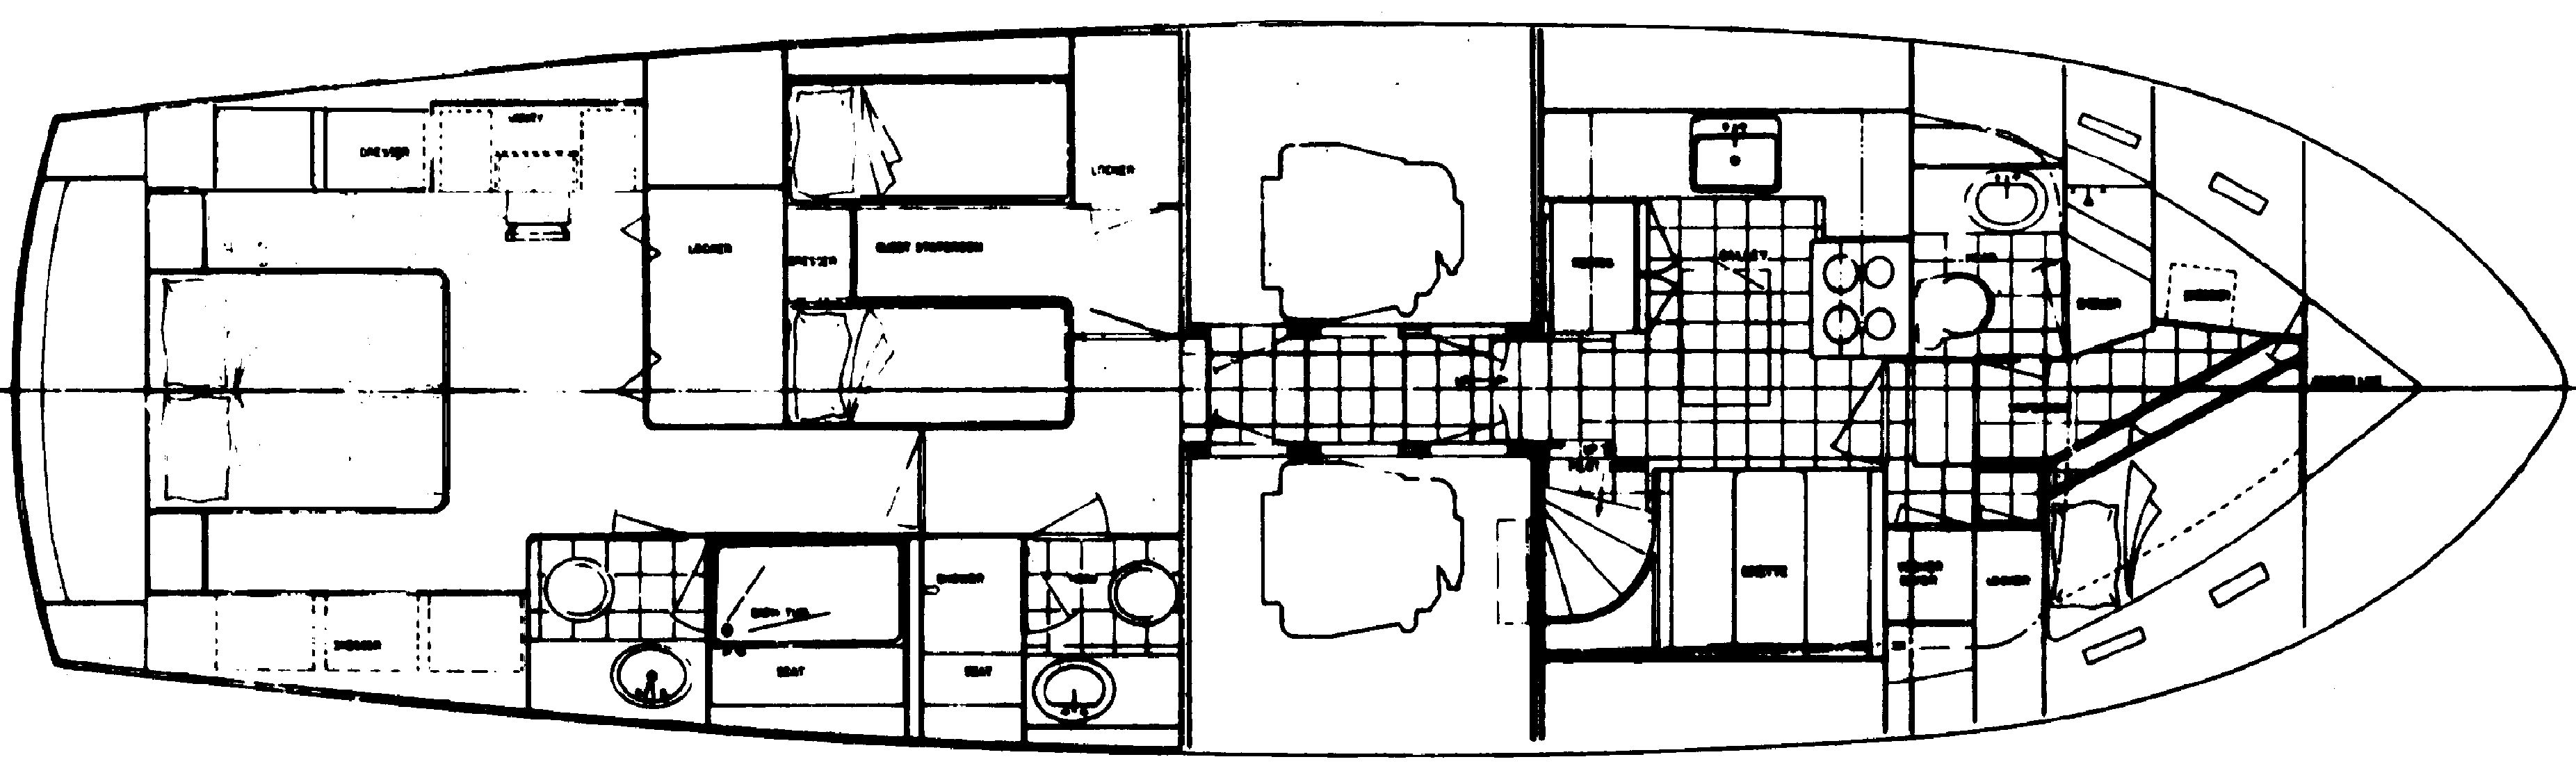 Galley Down Layout